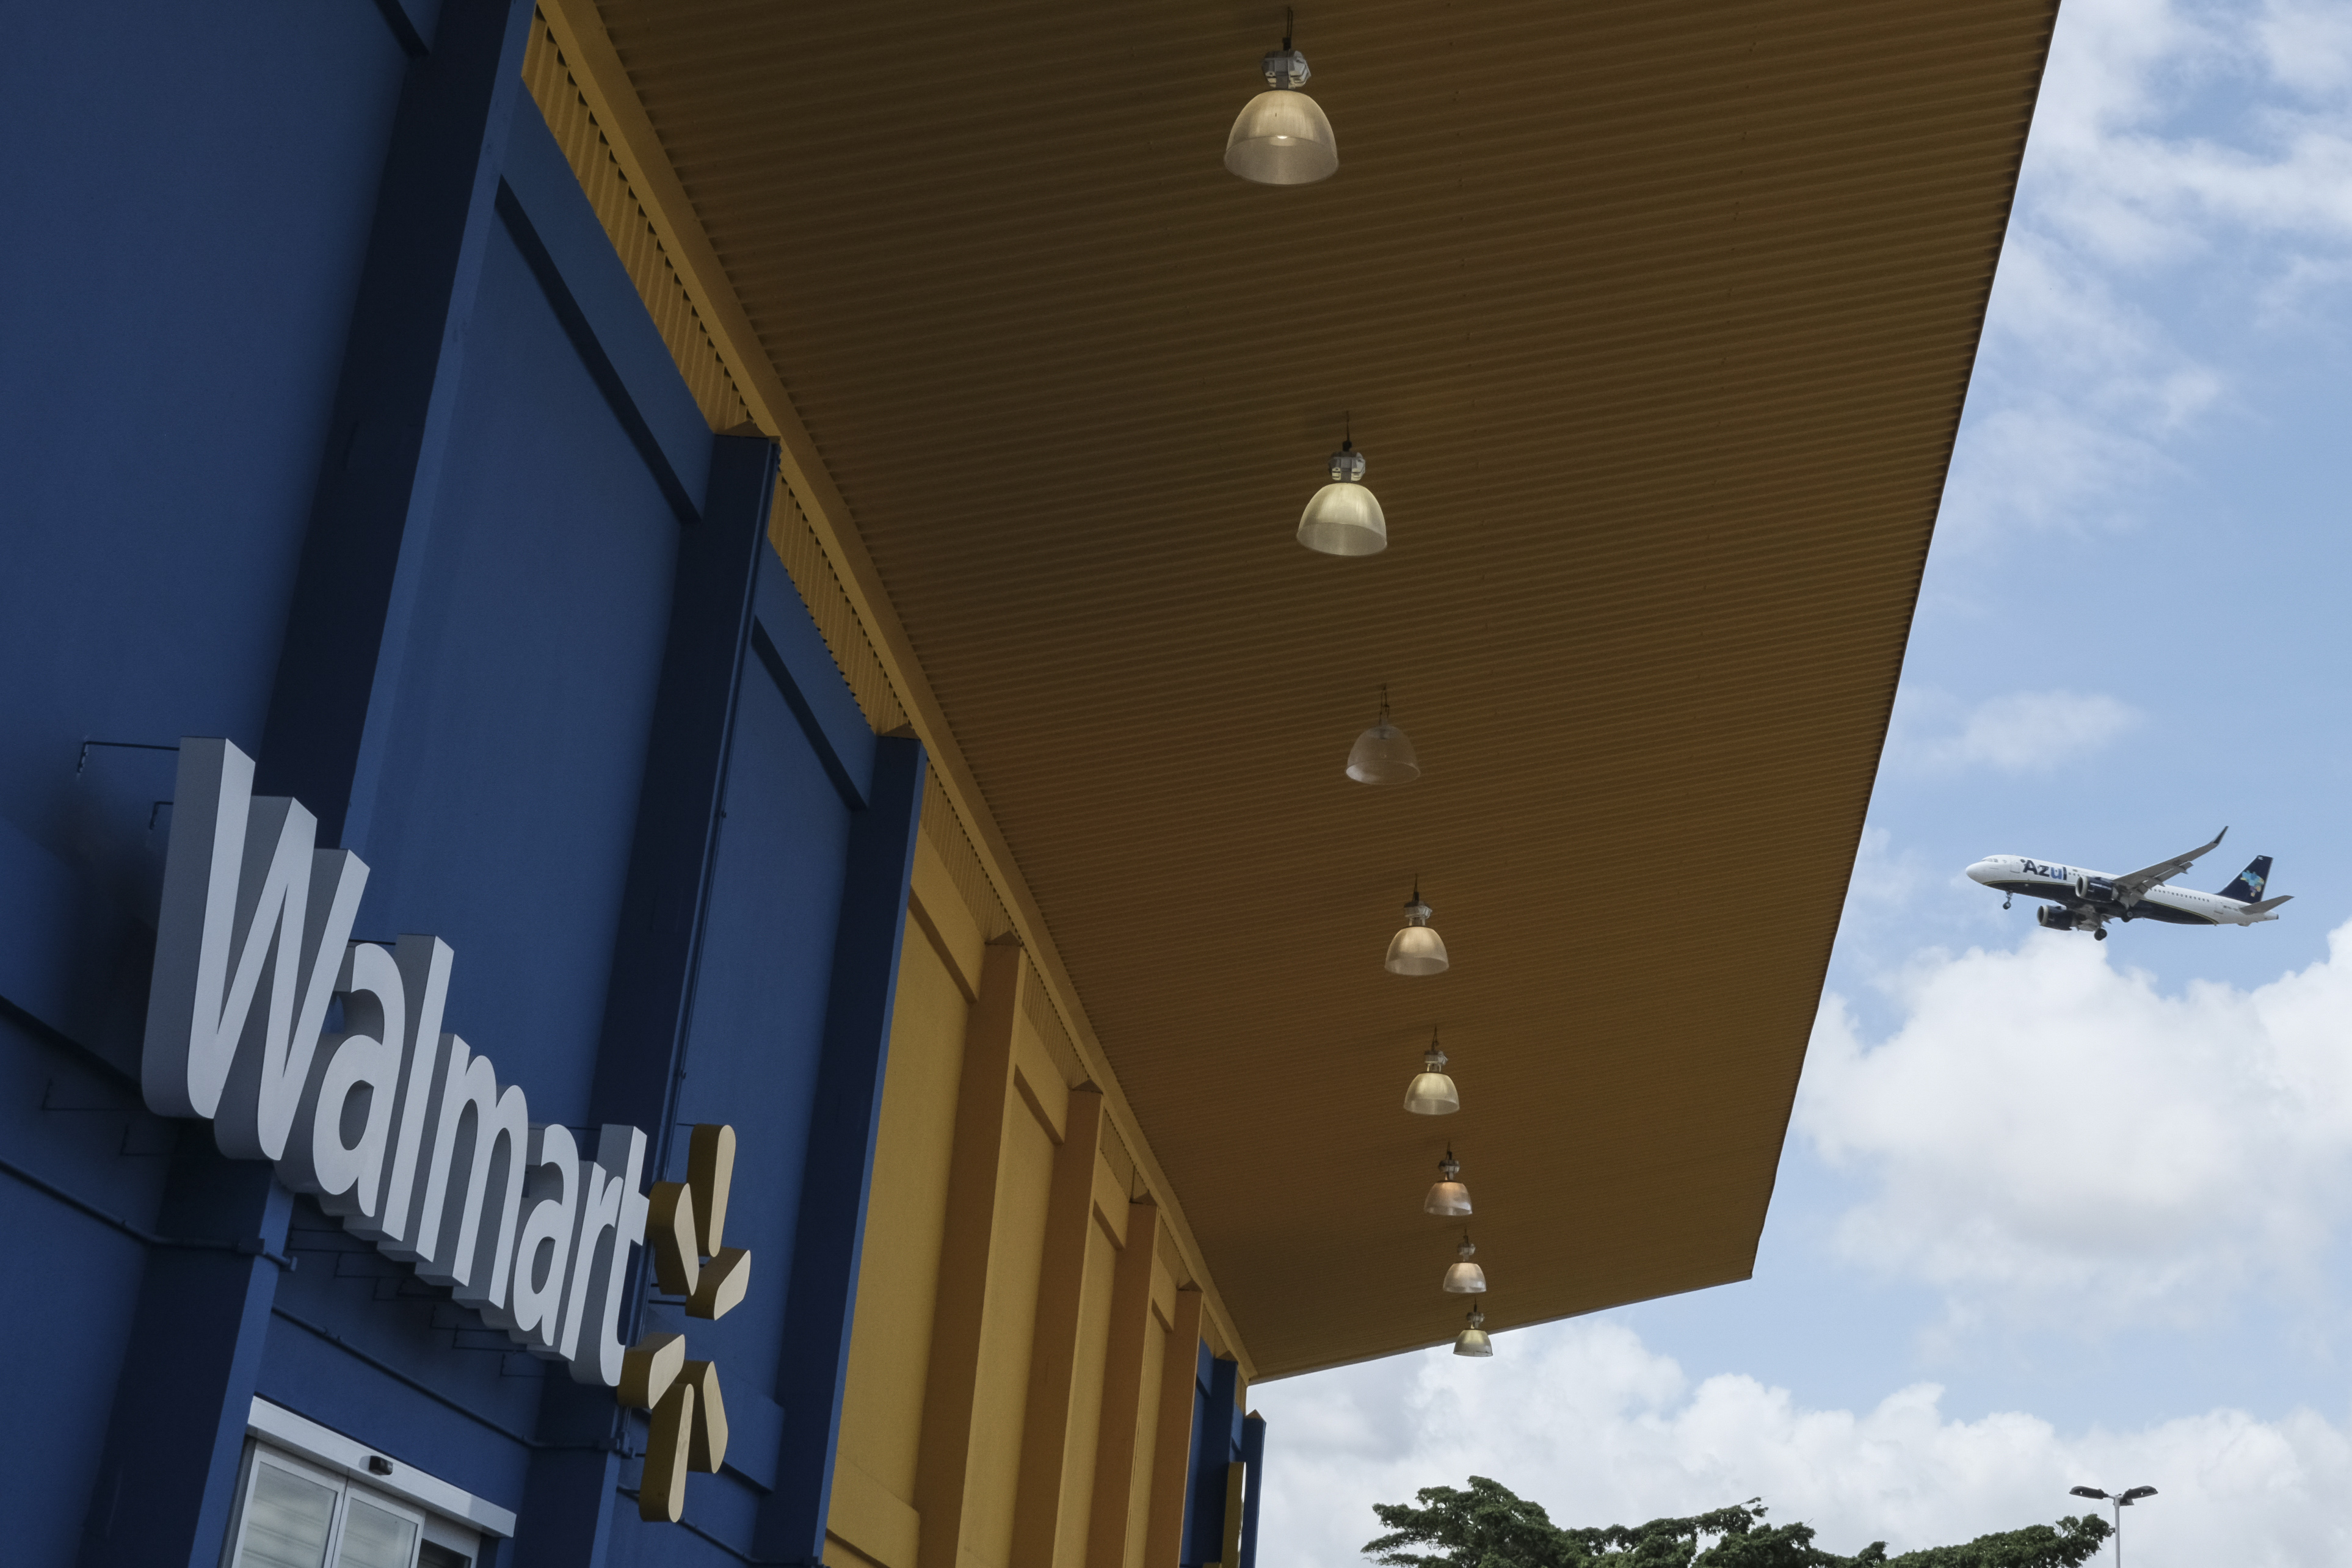 Walmart, Unified Physical And Online Units In Brazil